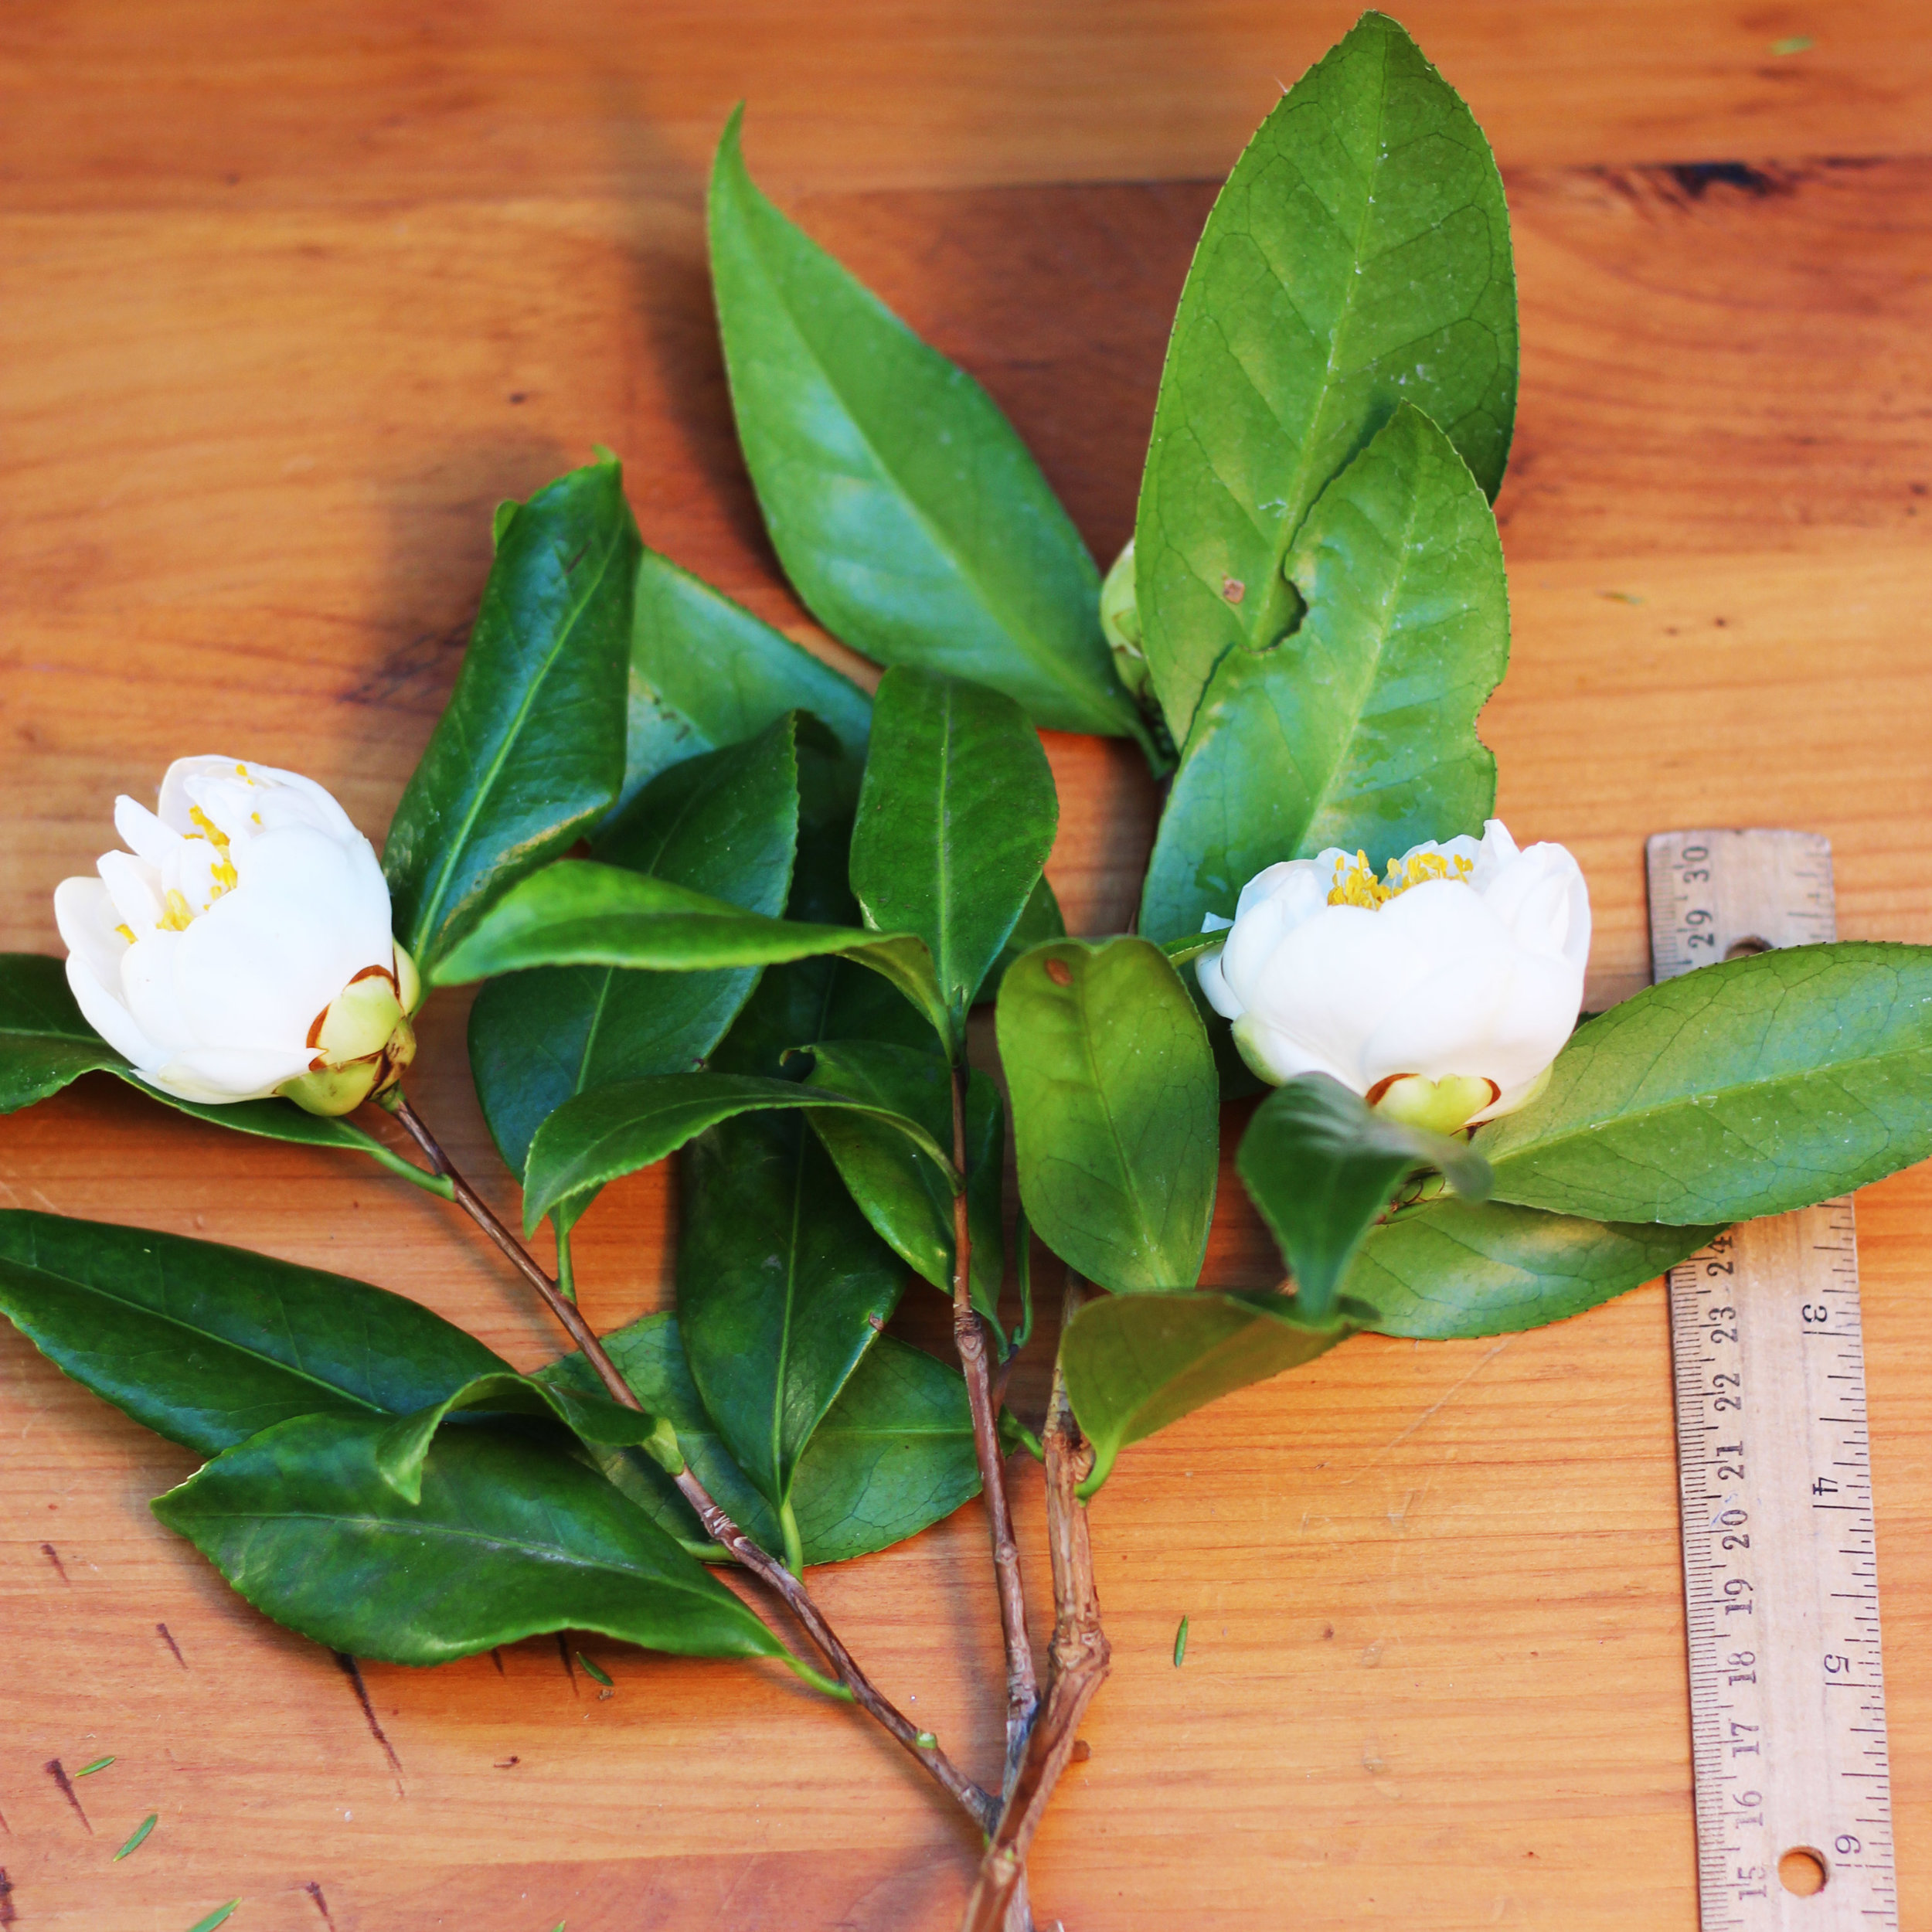 Cut 2 buds that are starting to open and their foliage. These are 9 inches long.